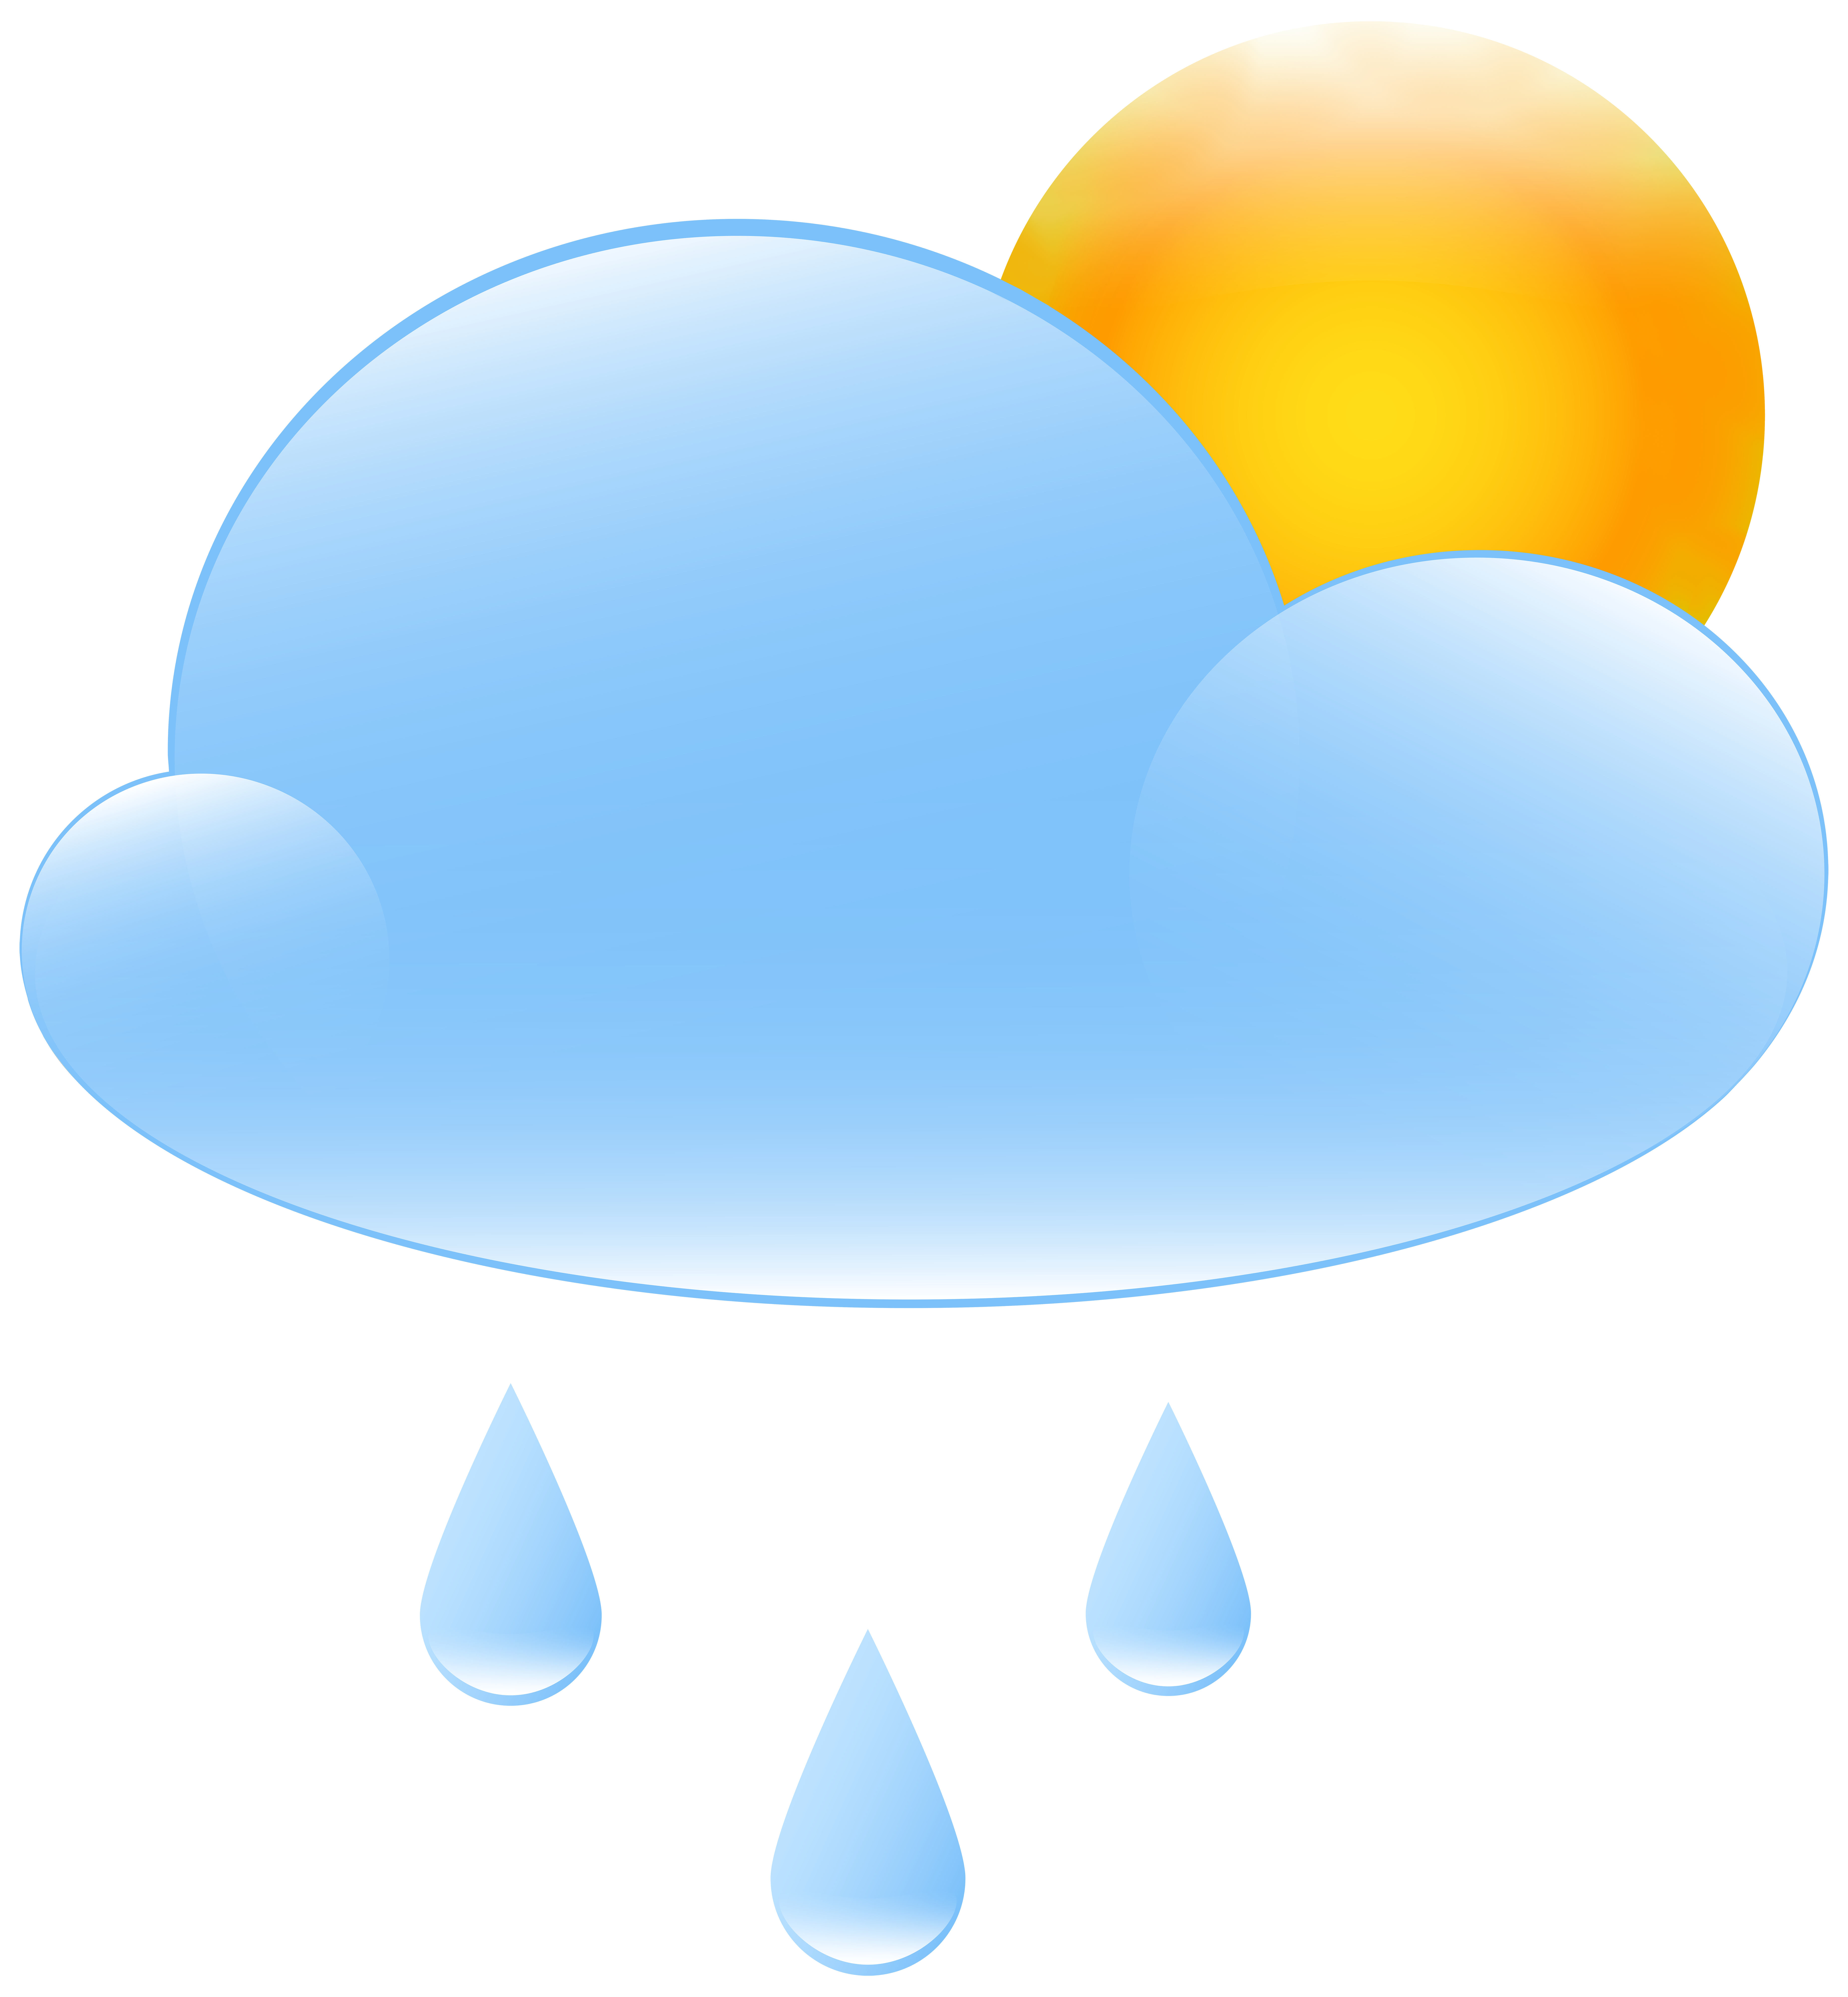 Clipart rain sun. Partly cloudy with and